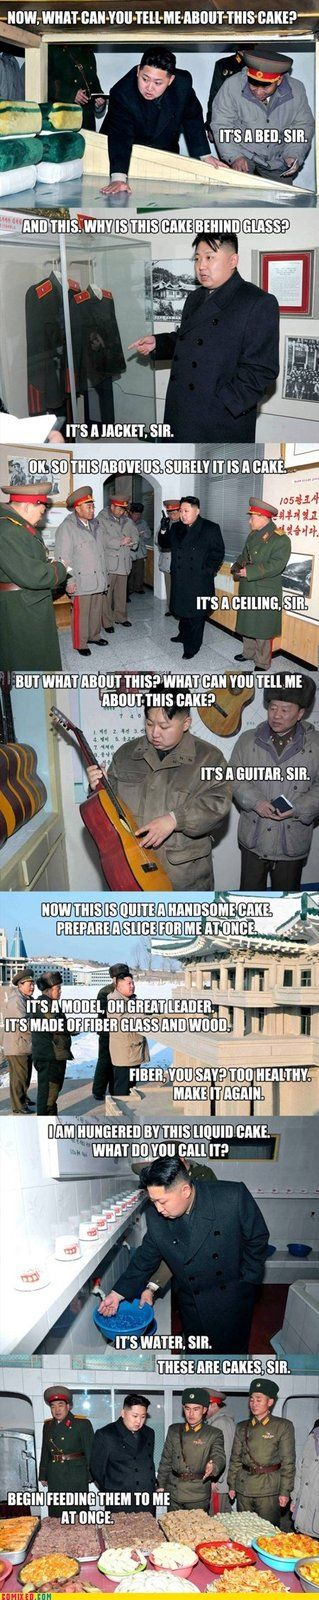 Kim Jong-un pointing at things that he thinks are cakes.: Funnies Pictures, Kim Jong Un, North Korea, Cakes, Even, Humor, Funnies Images, Funnies Stuff, Kim Jongun